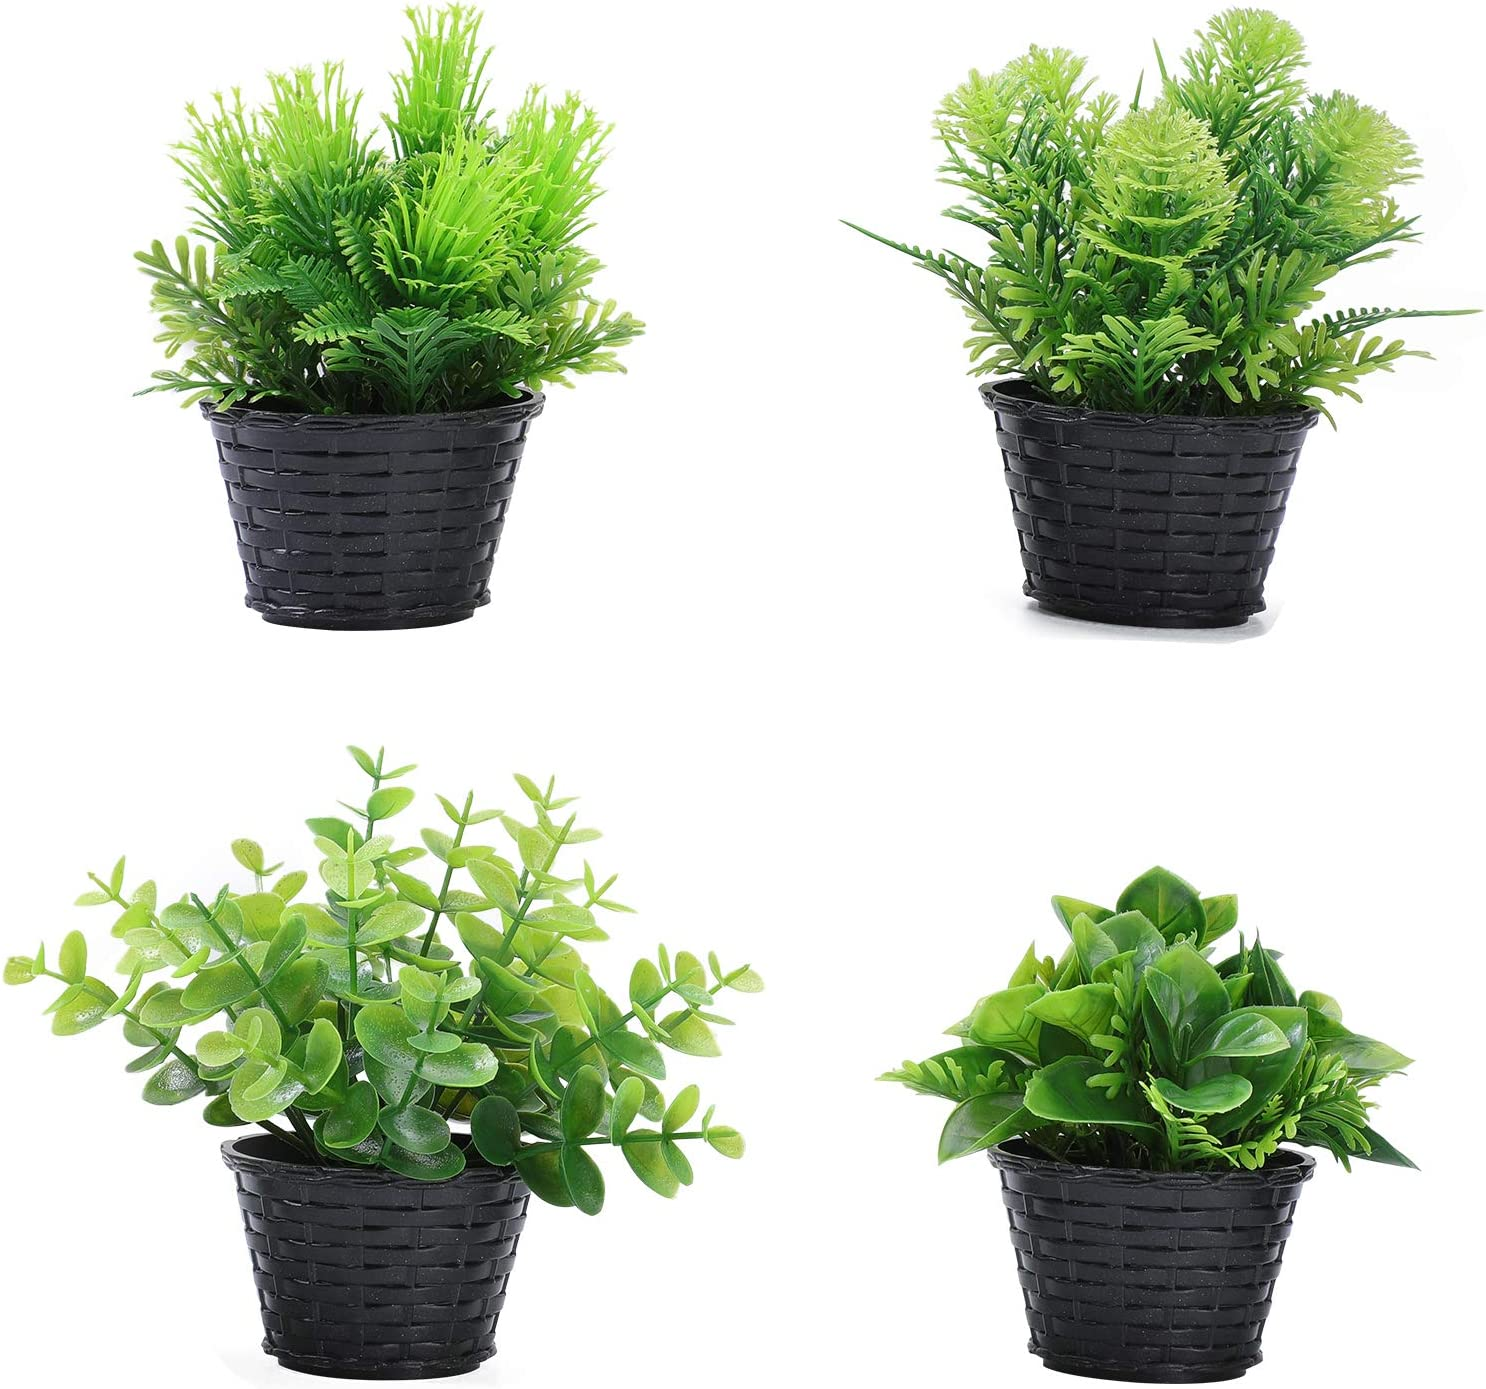 Green Decoration Artificial Plants Small Potted Realistic Fake Plastic Greenery Tabletop Topiary Trees for Home Office Garden Decor Indoor & Outdoor Set of 4 Faux Tabletop